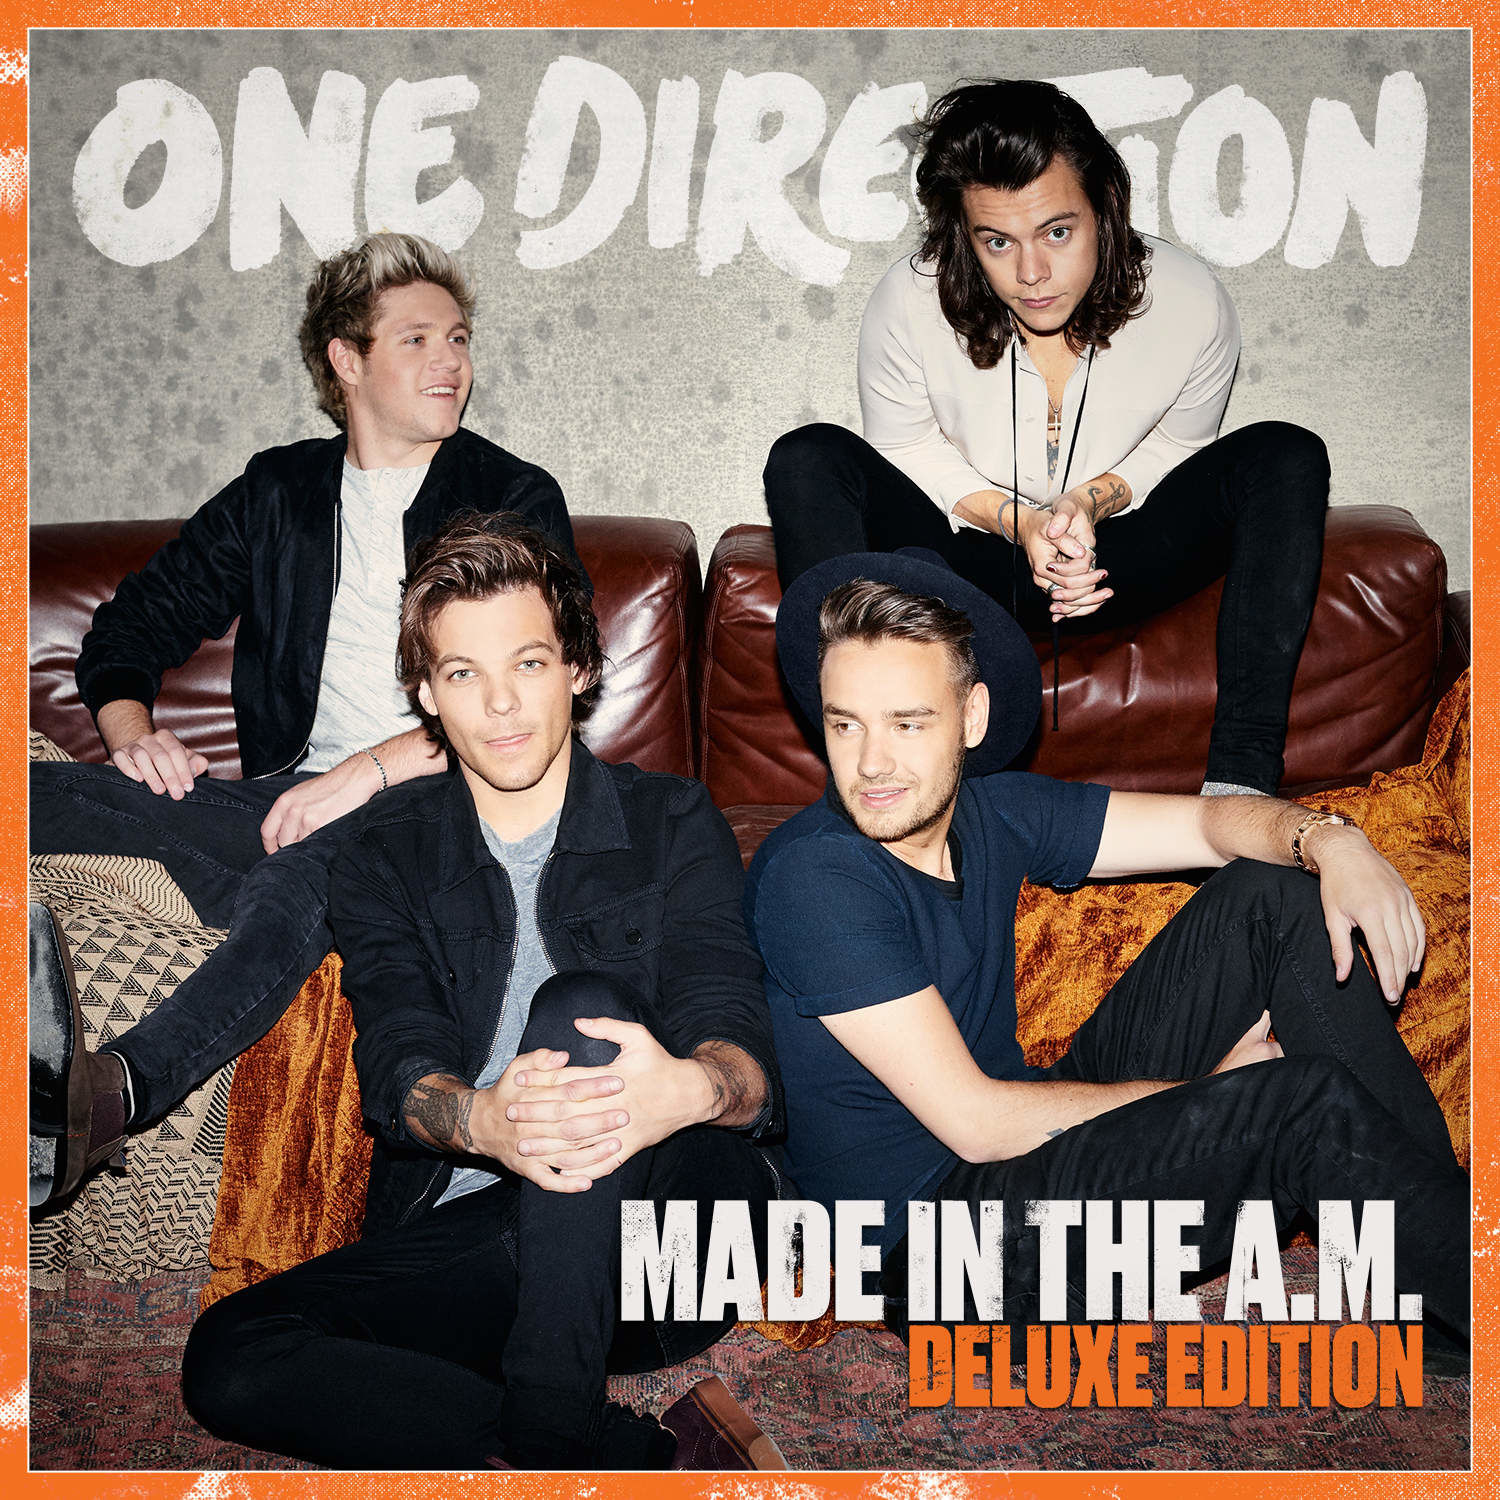 one direction, 1d, made in the am, cover, deluxe edition, harry styles, liam payne, louis tomlinson, niall horan, fifth album, midam